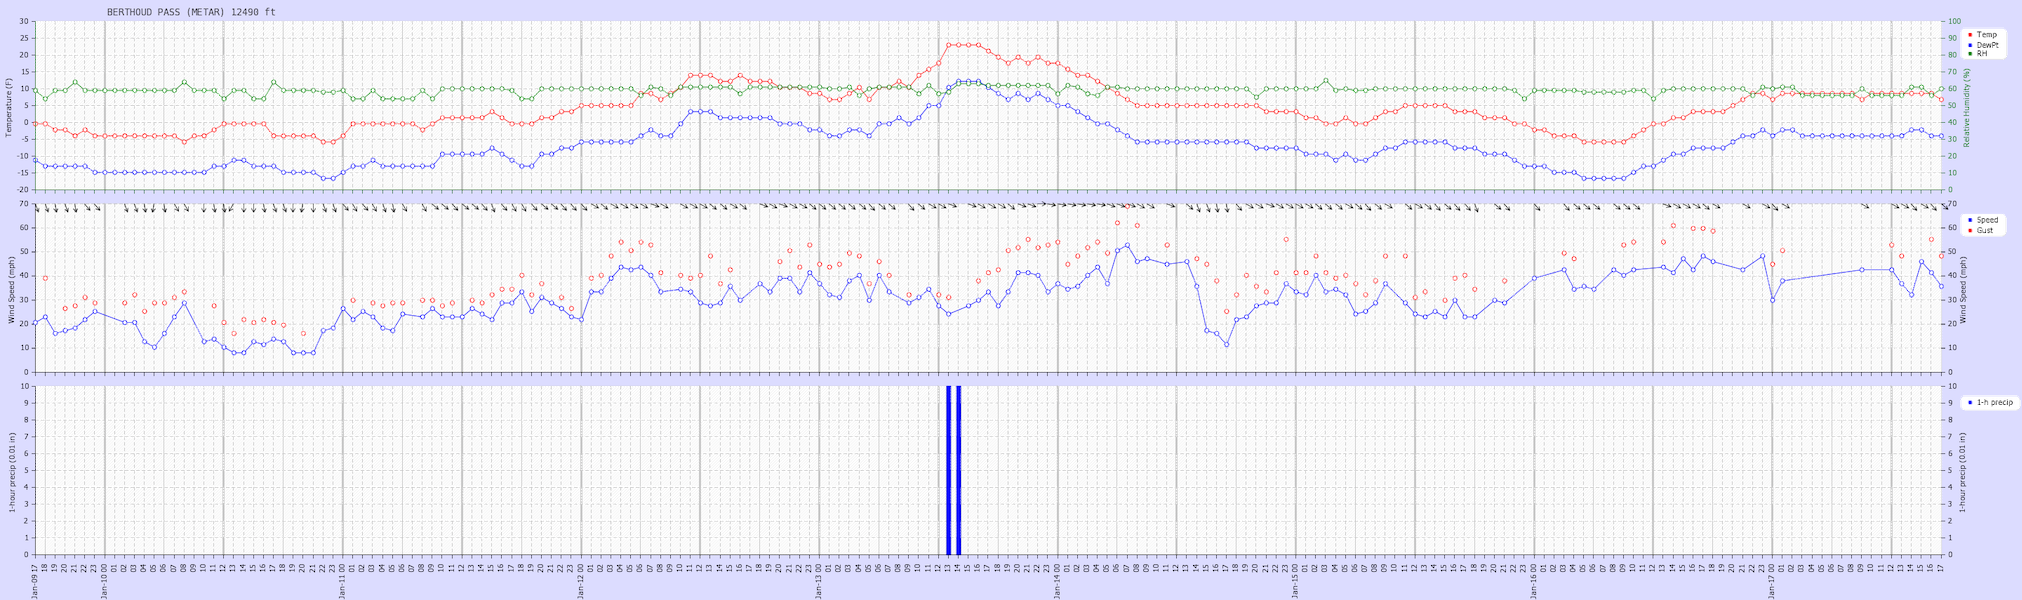 <b>Figure 16:</b> Weather graph from the Berthoud Pass METAR station at 12,490 feet on Berthoud Mines Peak for the week prior to the accident. This station is 6.7 miles to the west-southwest of the accident site. This is a high elevation wind station, but the average wind speed only dropped below 20 miles per hour for five hours in the five days prior to the accident, and multiple maximum hourly gusts over 60 miles per hour were recorded. (<a href=javascript:void(0); onClick=win=window.open('https://caic-production.imgix.net/cuf17tlhkq5y2e2fa8g731ypqnfi?ixlib=php-3.1.0&s=82069bf019c2dc5ae9db19a5db5b134e','caic_media','resizable=1,height=820,width=840,scrollbars=yes');win.focus();return false;>see full sized image</a>)